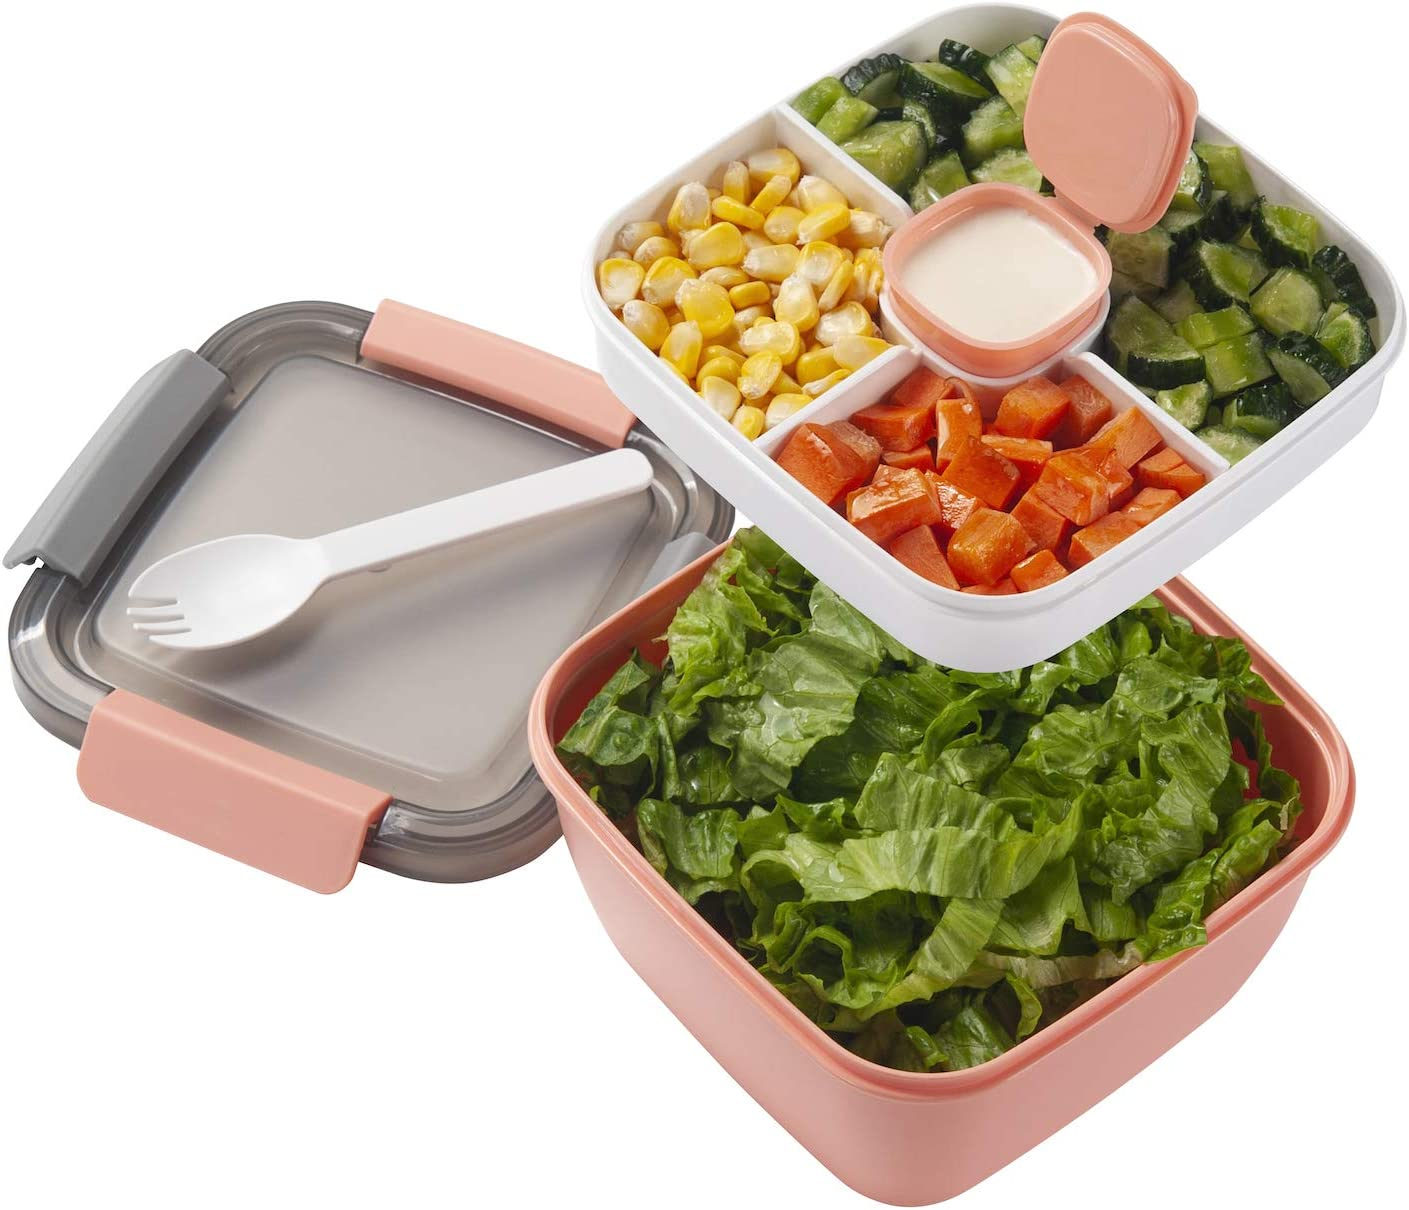 Freshmage Salad Lunch Container To Go, 42-oz Salad Bowls with 3 Compartments, Salad Dressings Container for Salad Toppings, Snacks, Men, Women (Pink)